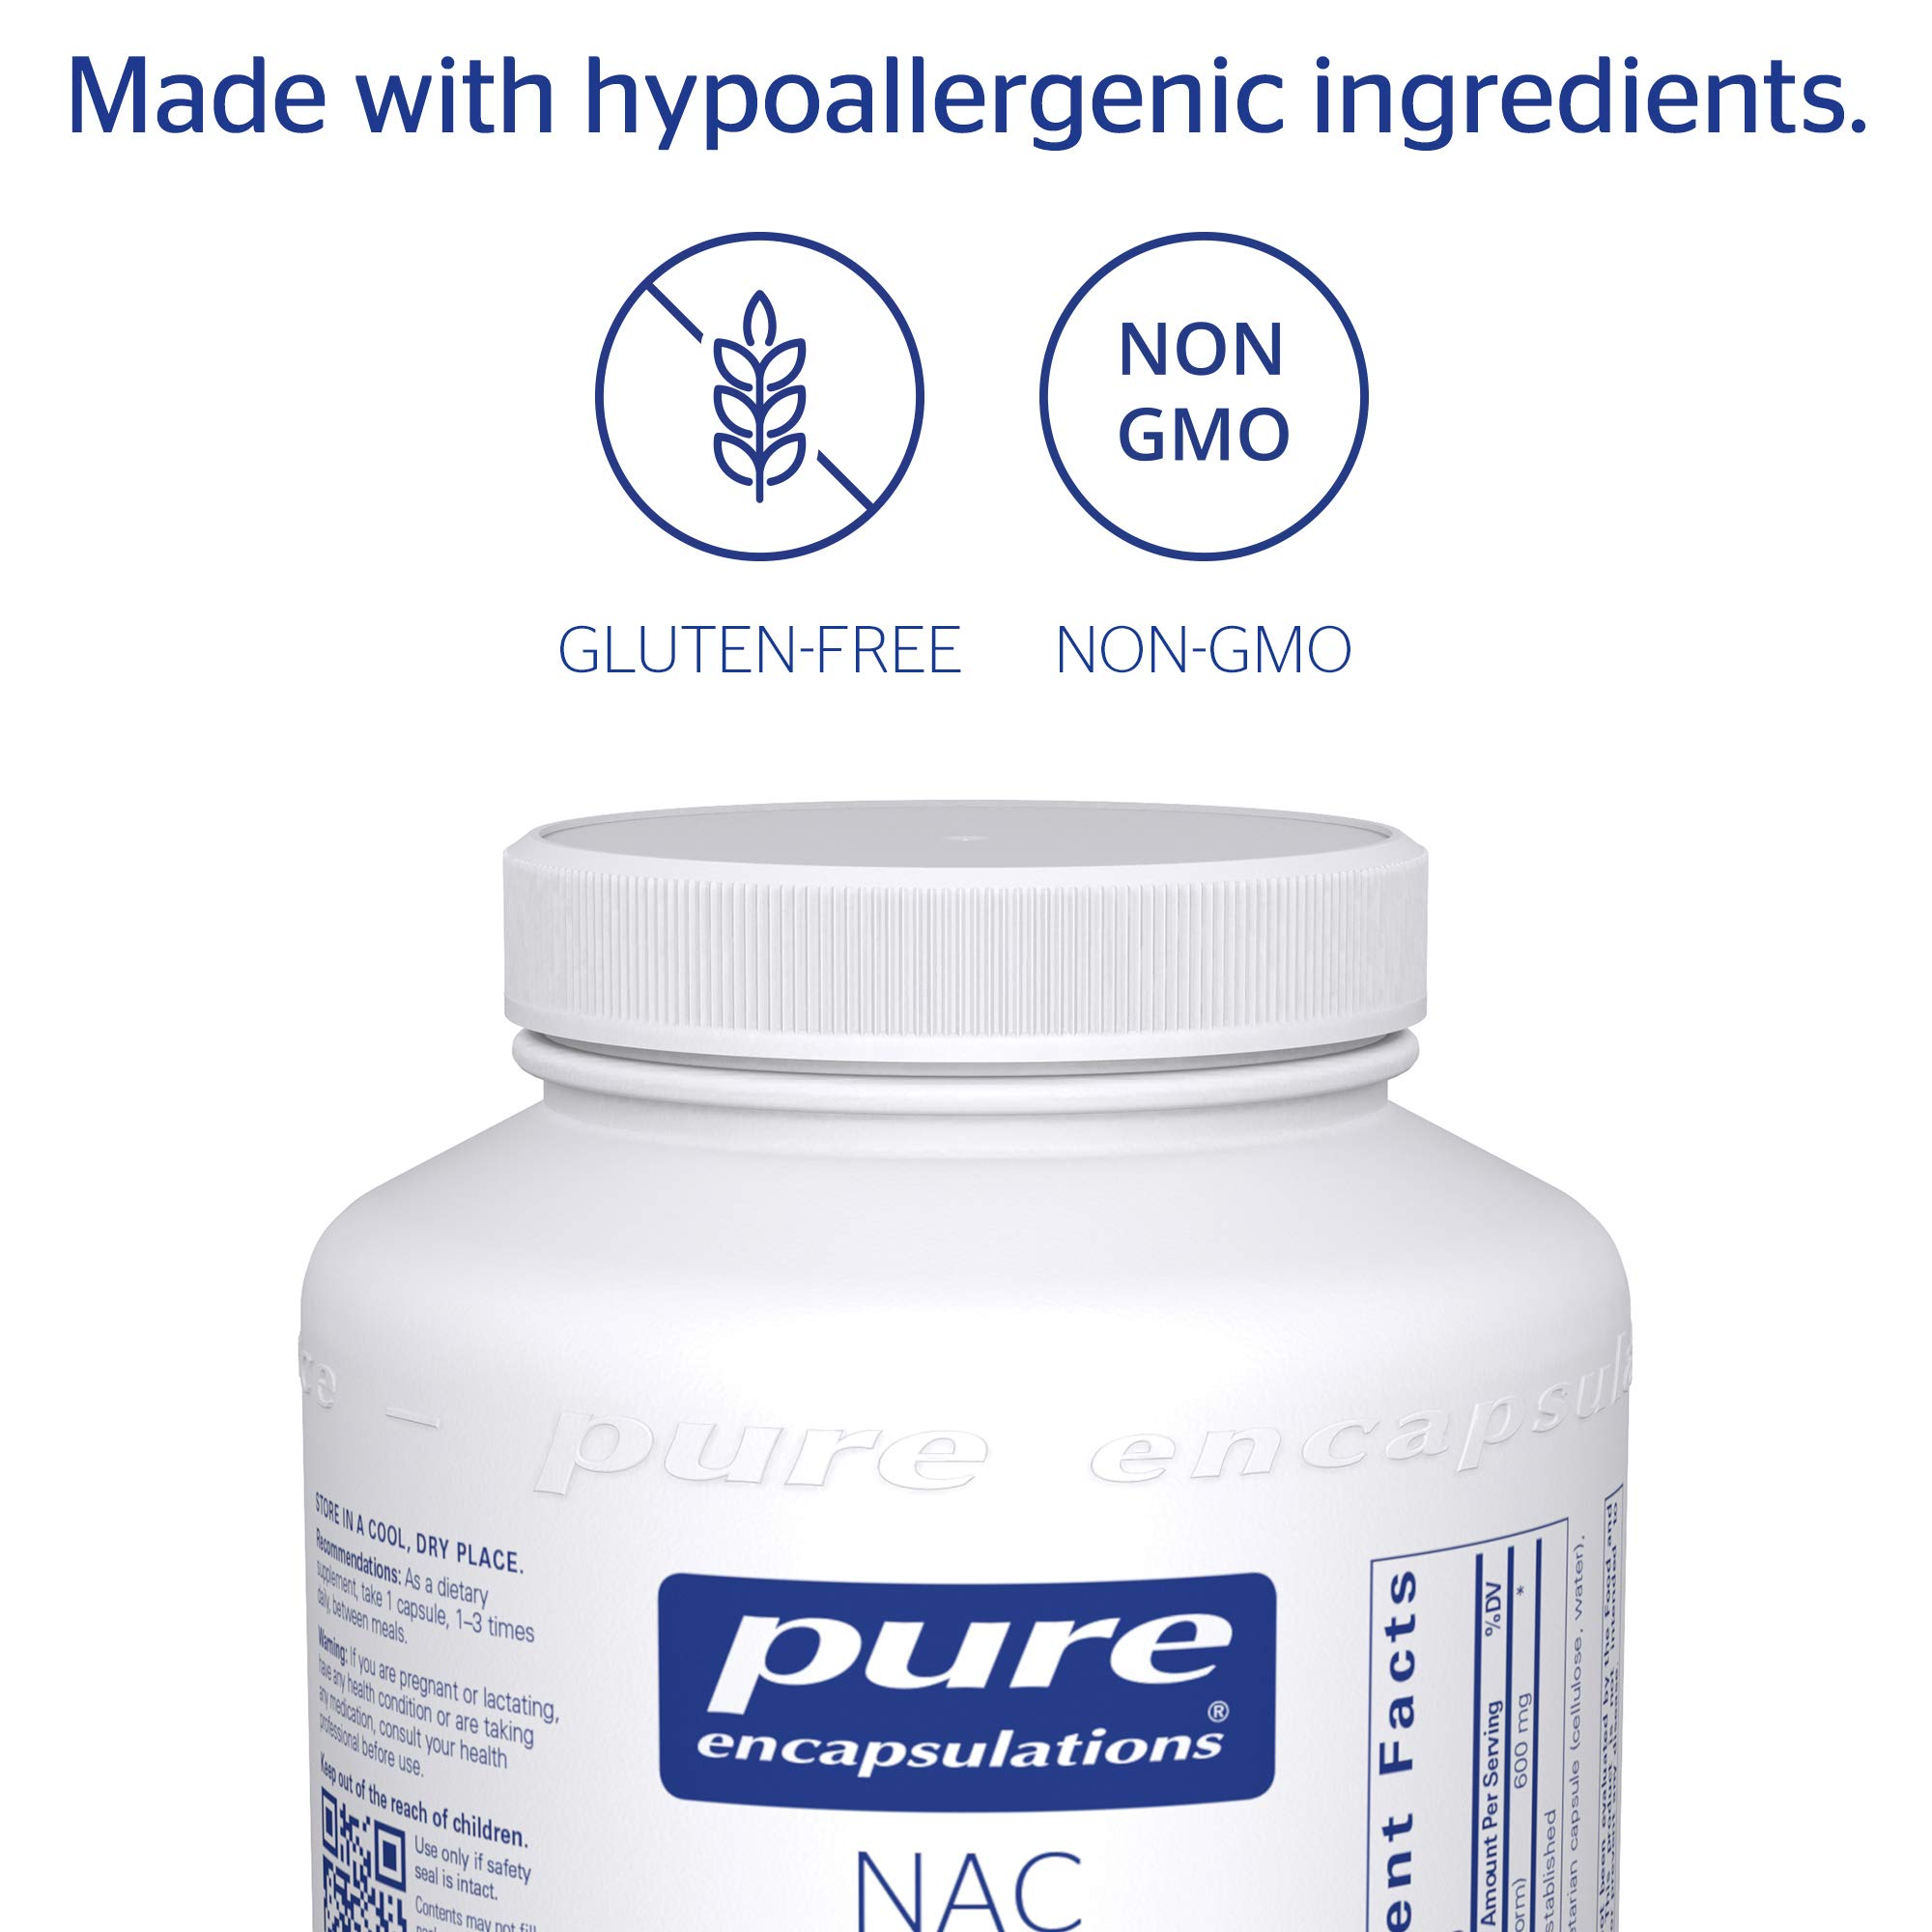 Pure Encapsulations - NAC (N-Acetyl-L-Cysteine) 600 mg - Amino Acids to Support Antioxidant Defense and Healthy Lung Tissue - 360 Capsules by Pure Encapsulations (Image #4)